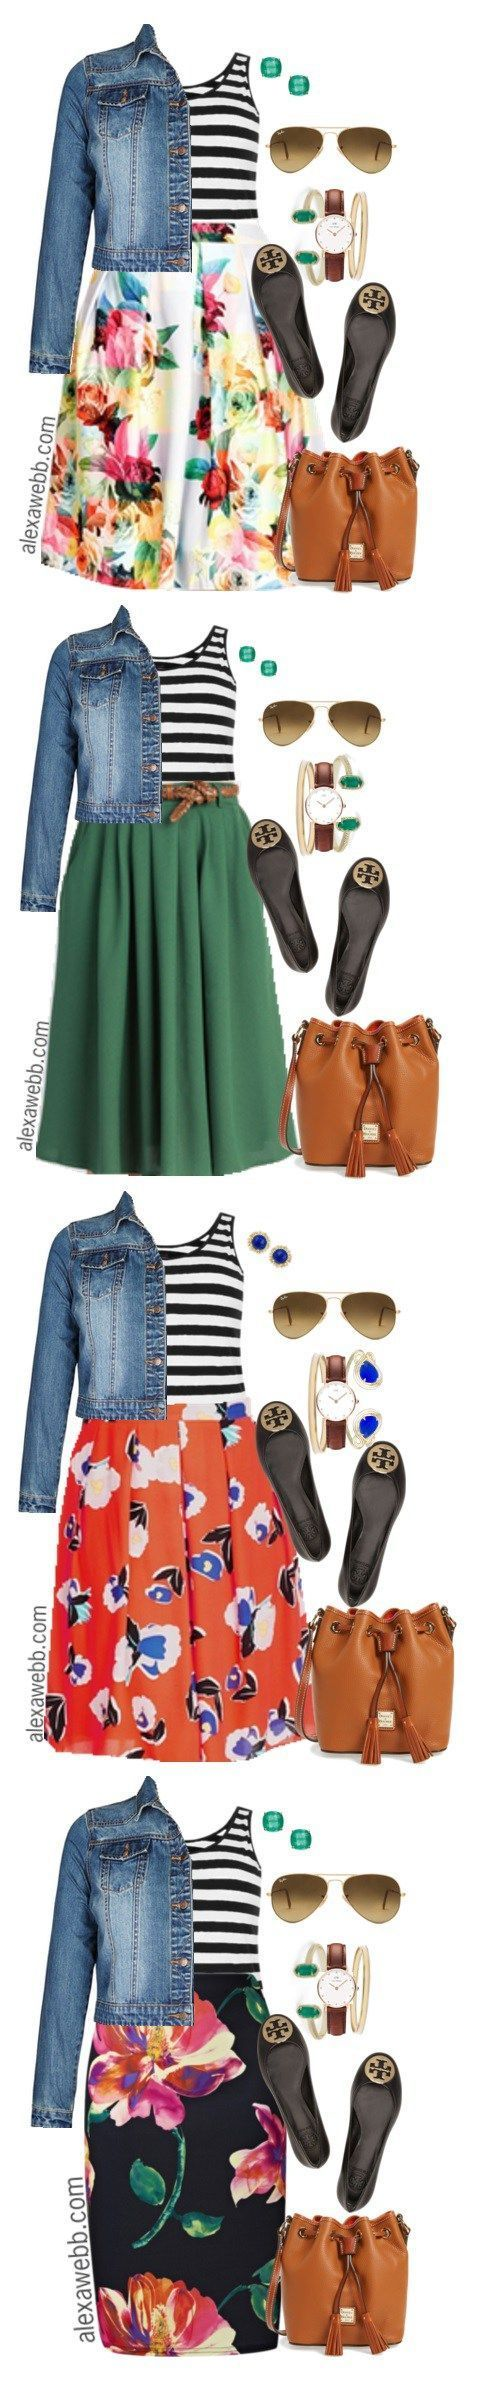 Plus Size Outfit Ideas - Plus Size Stripes and Skirts - Plus Size Fashion for Women - alexawebb,com #alexawebb #plus #size